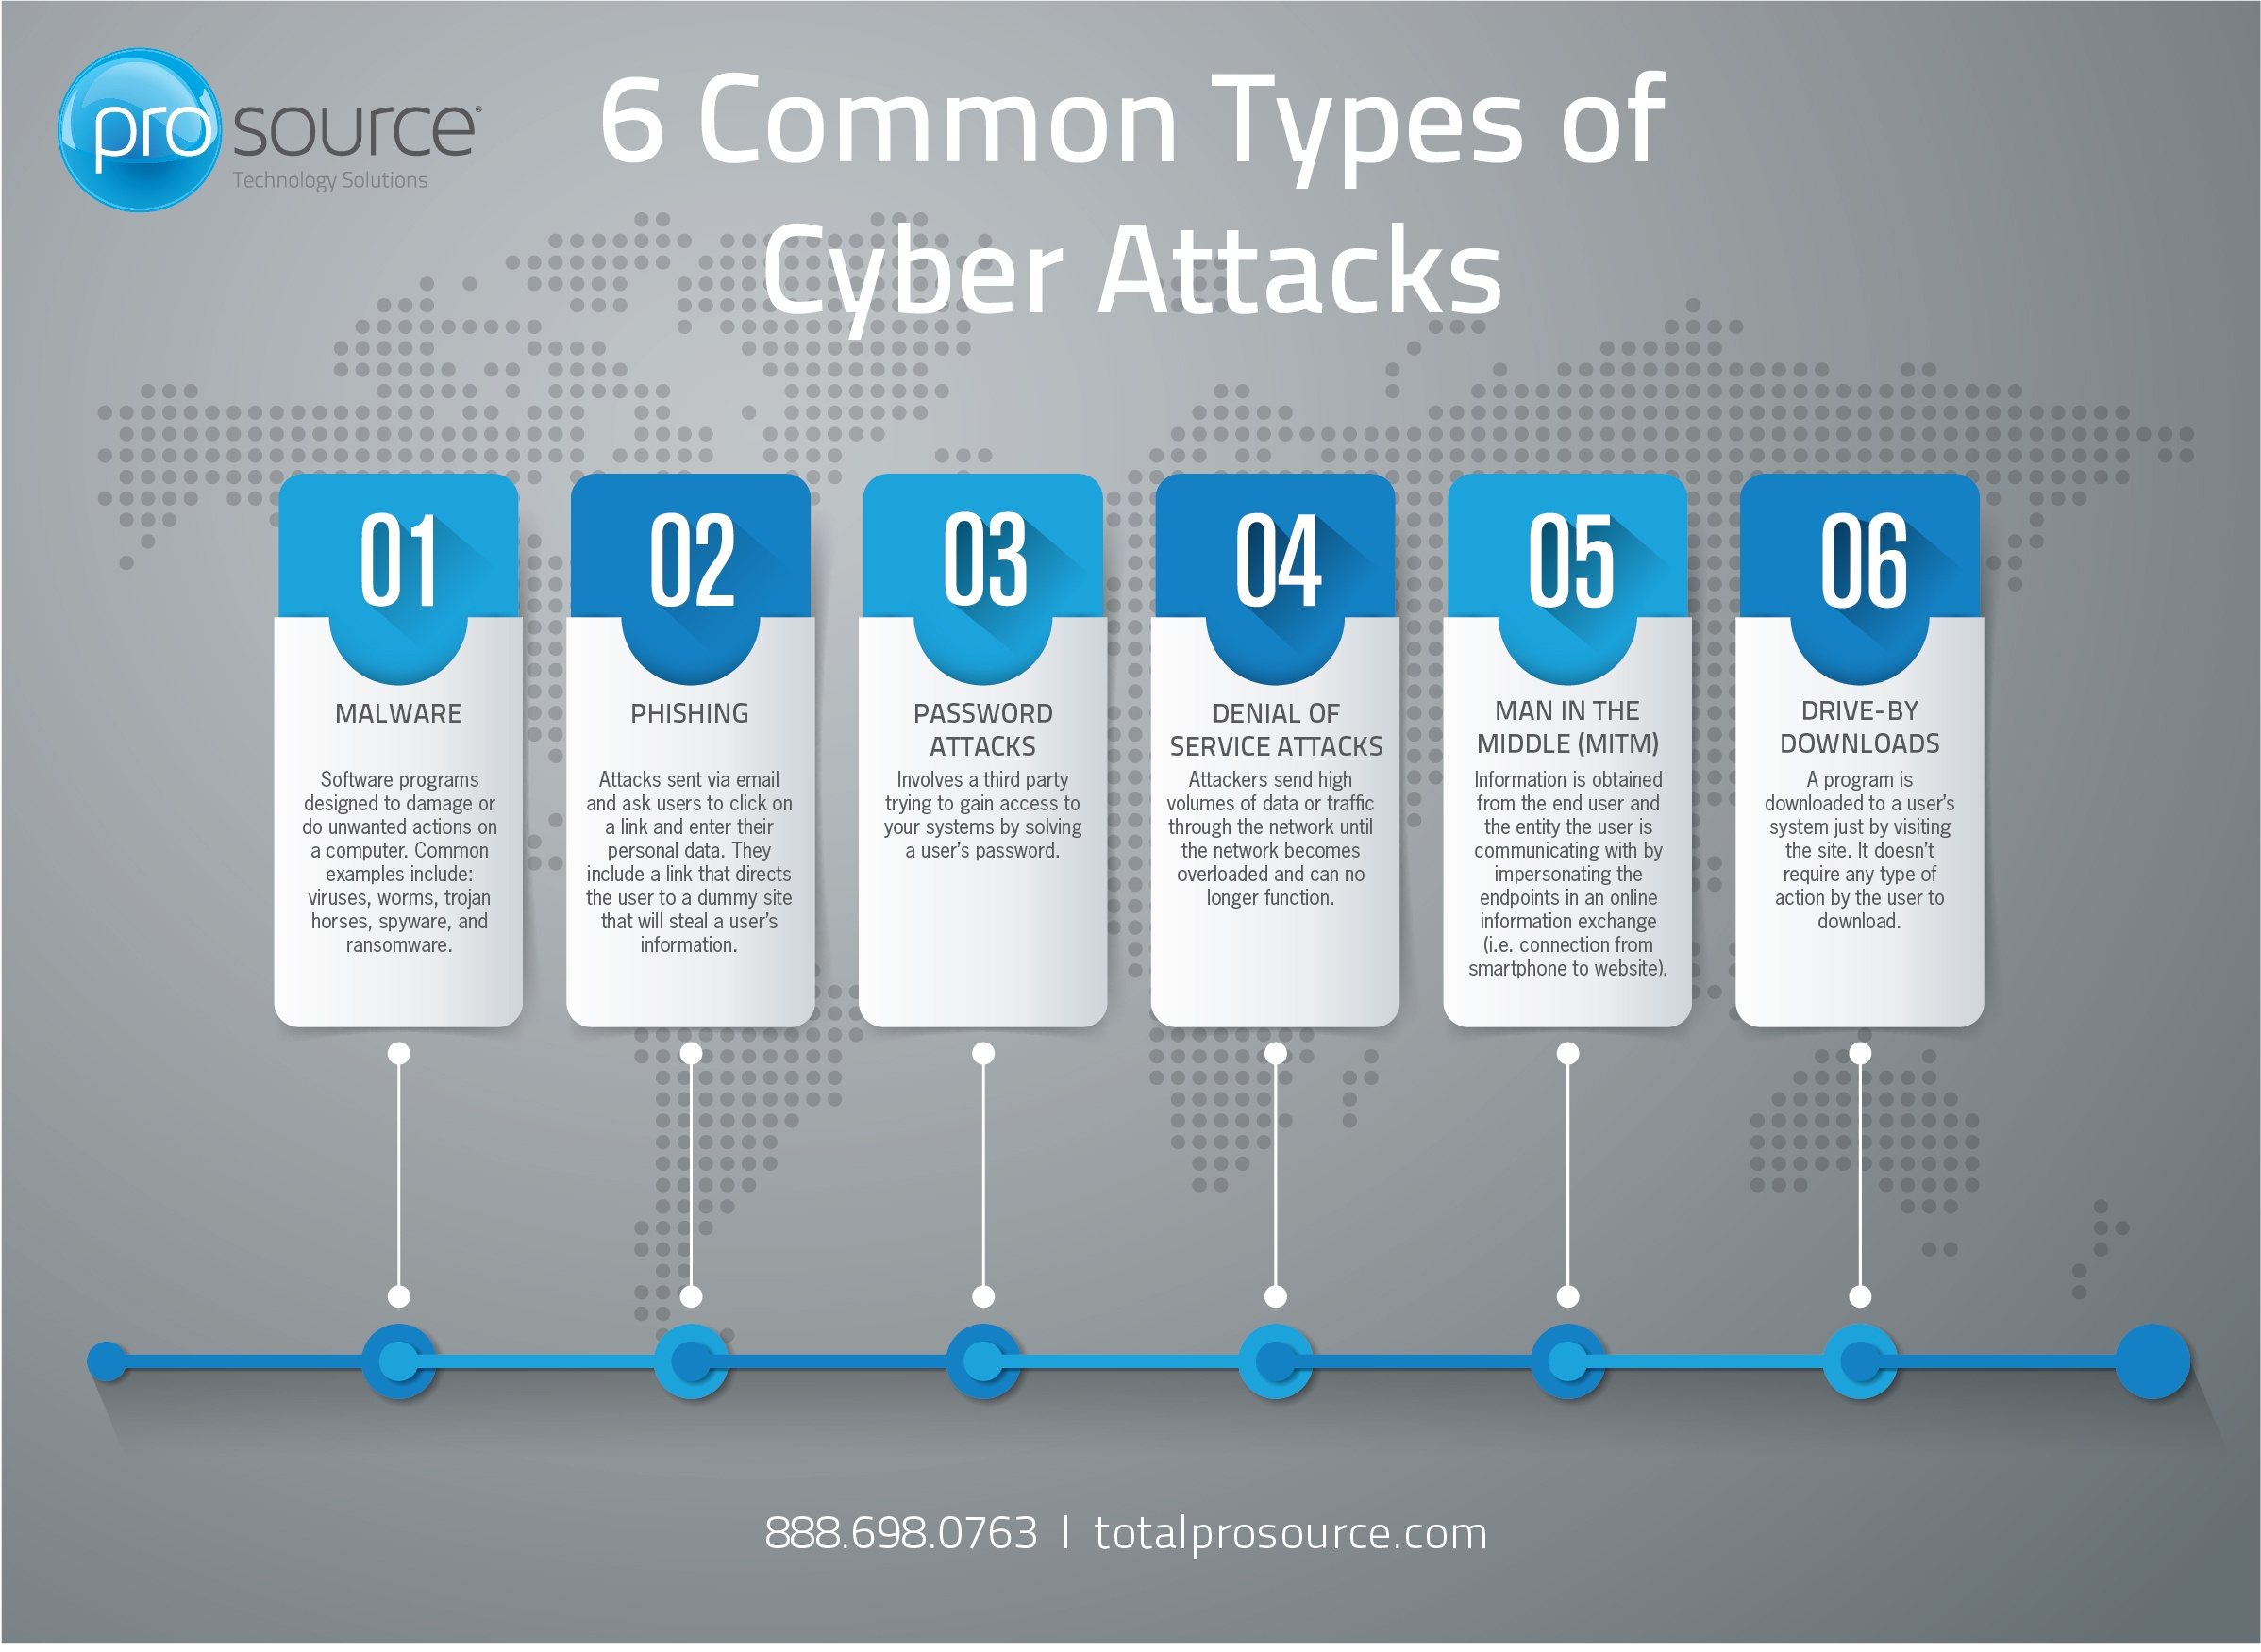 6 Common Types of Cyber Attacks Infographic